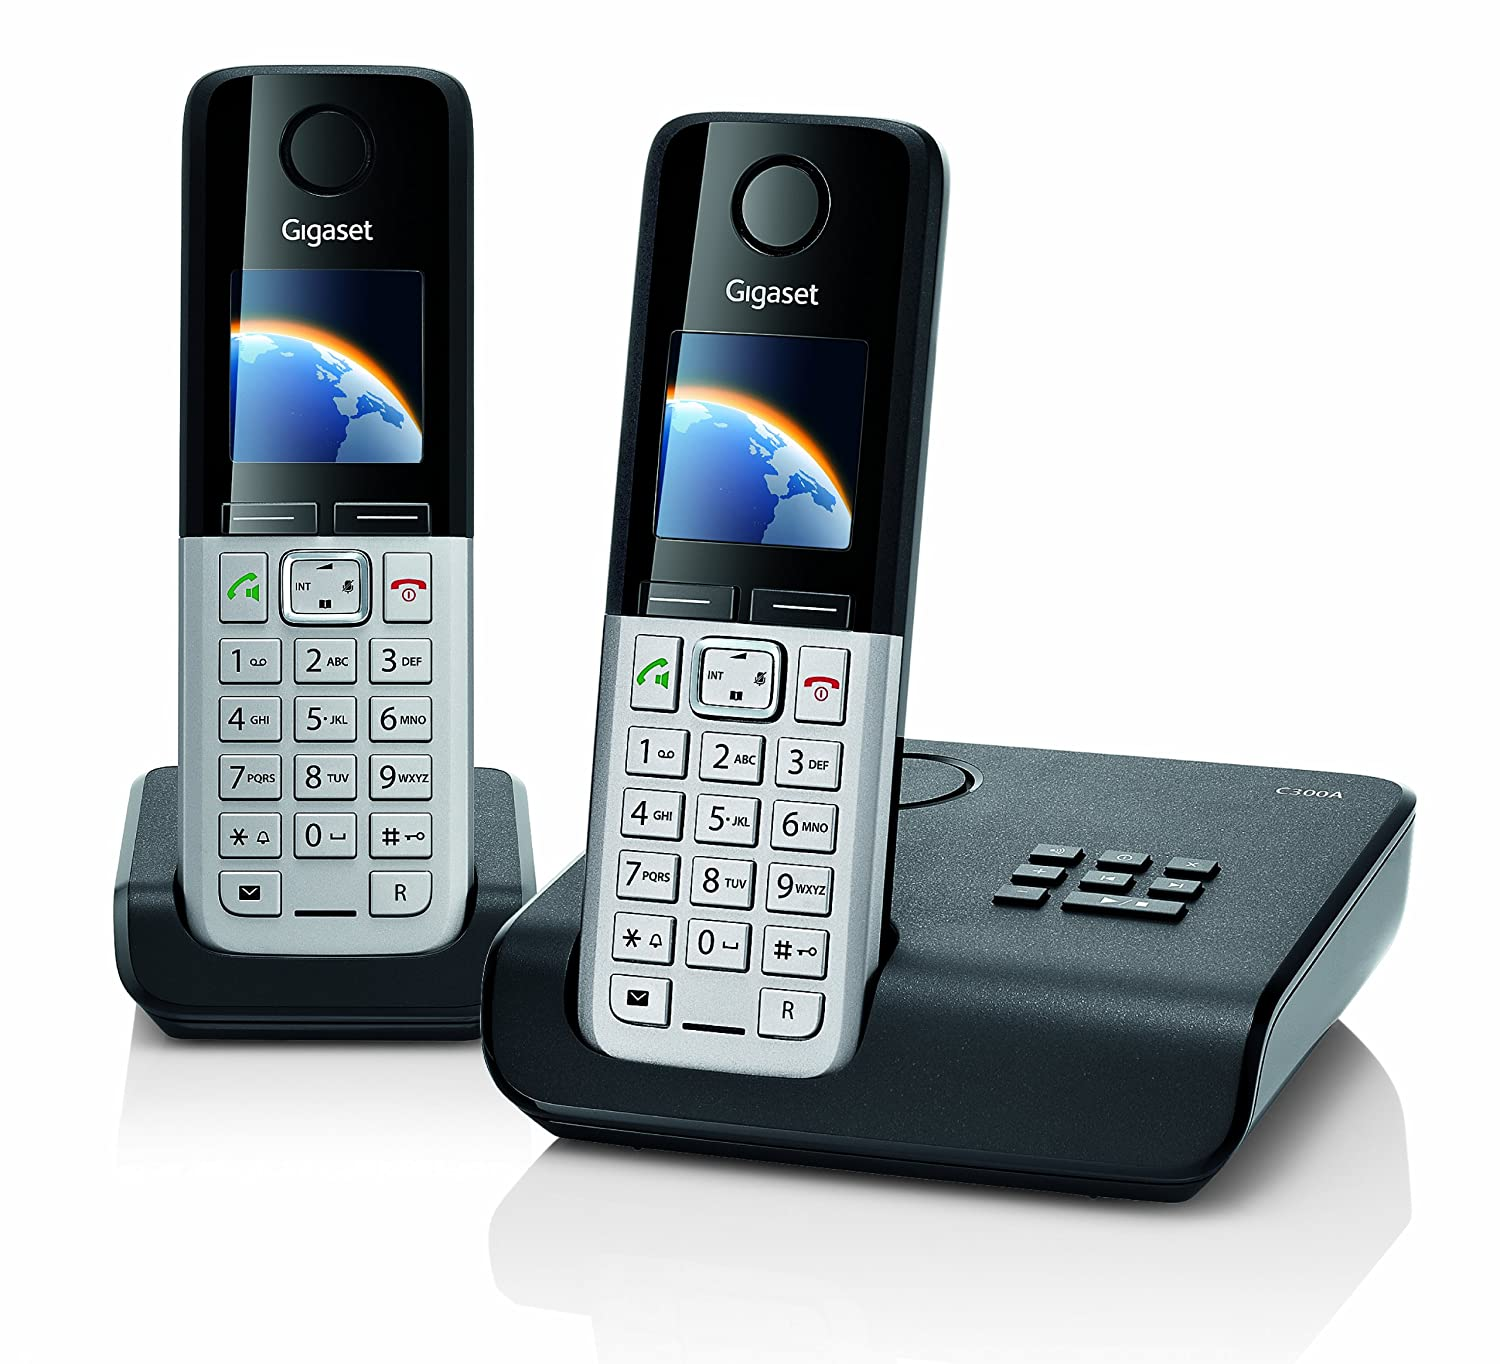 gigaset c300a twin dect cordless phone set with answer machine ebay. Black Bedroom Furniture Sets. Home Design Ideas